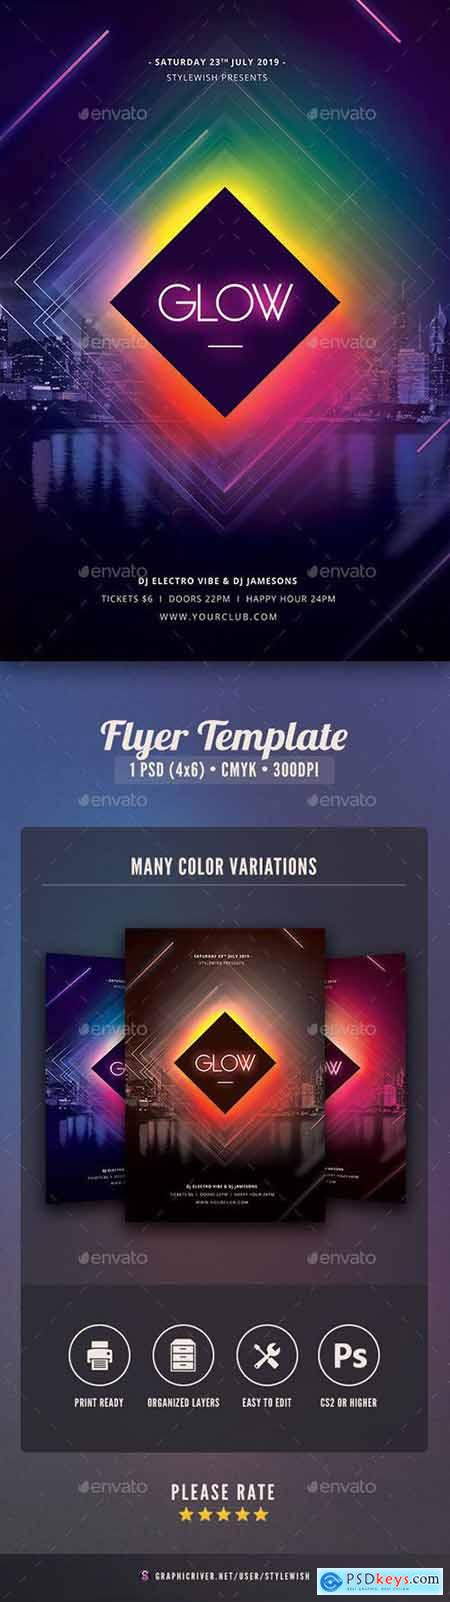 Graphicriver Glow Flyer